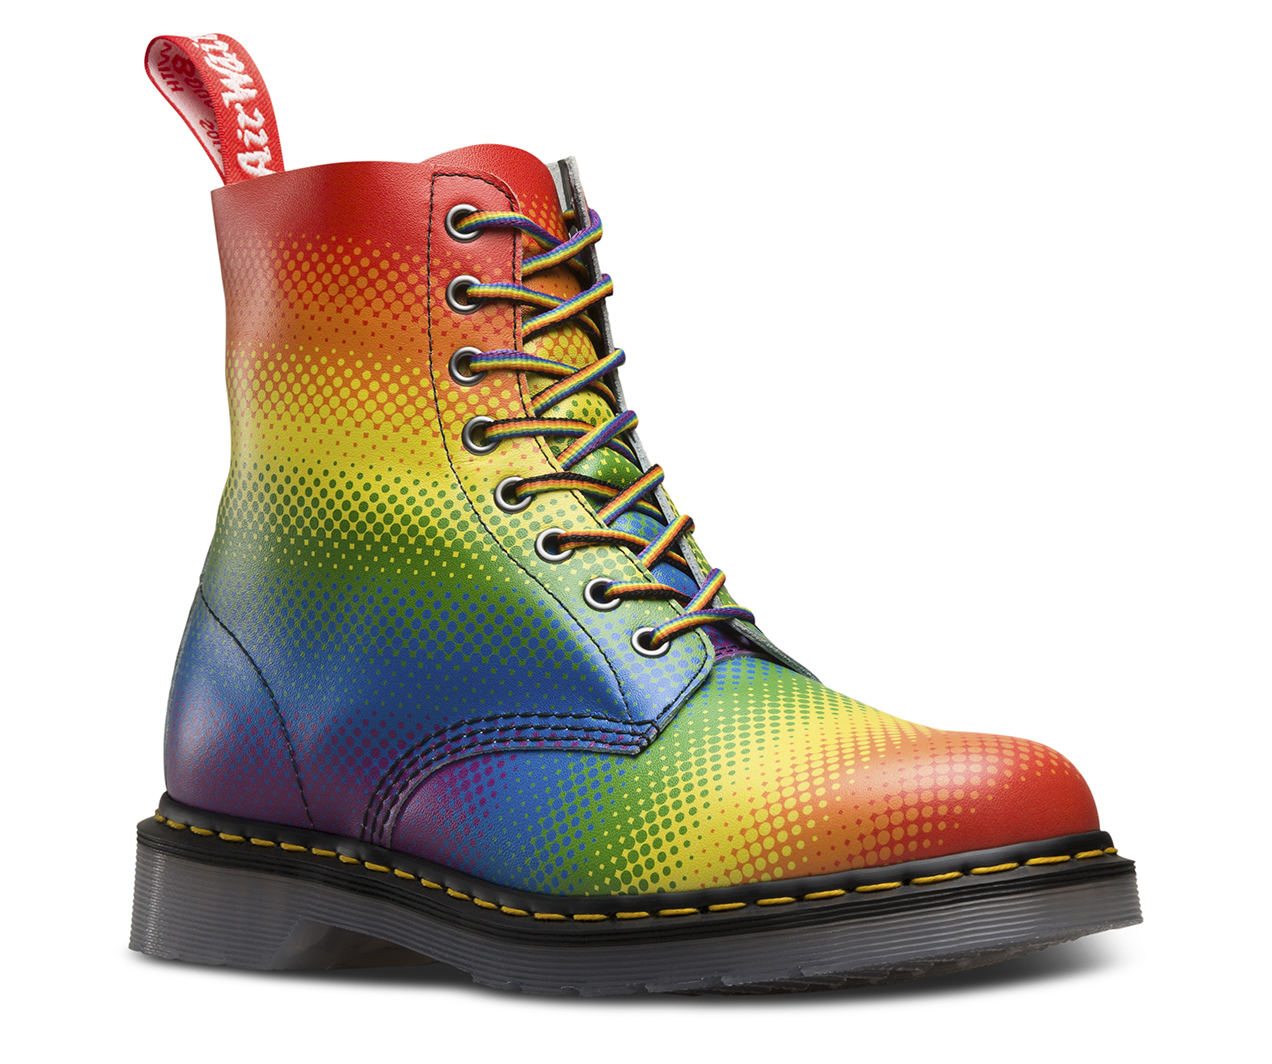 Image result for rainbow boots men